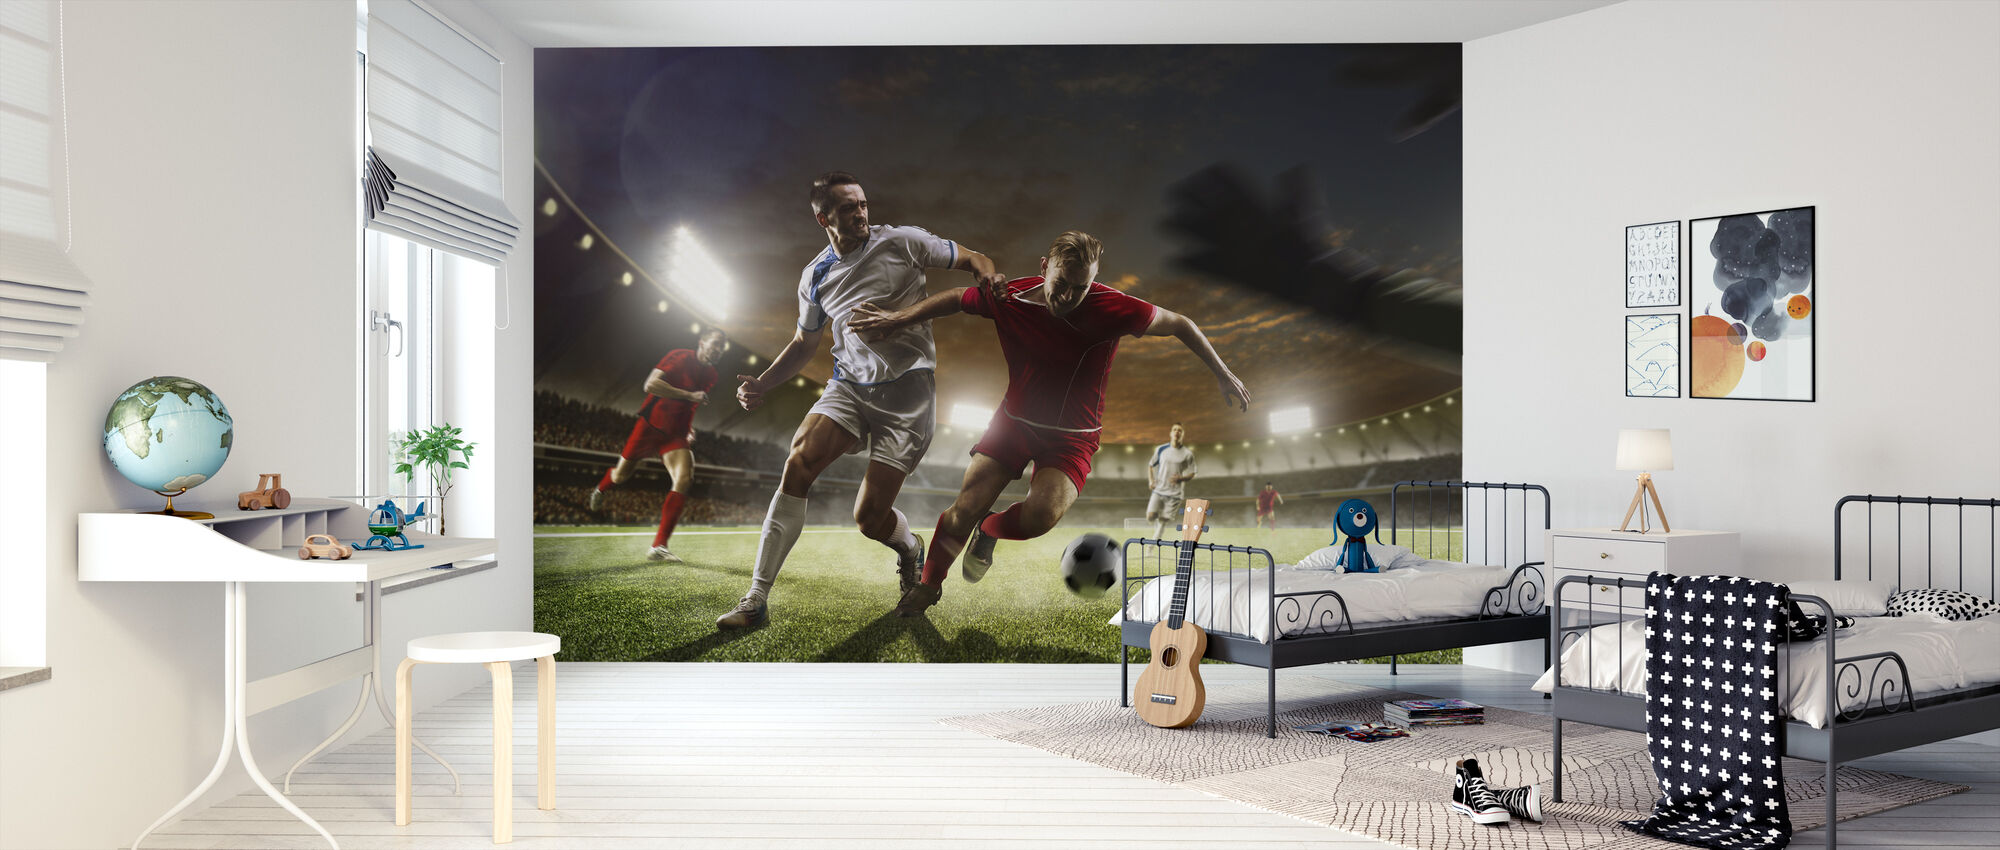 Playing Soccer - Wallpaper - Kids Room